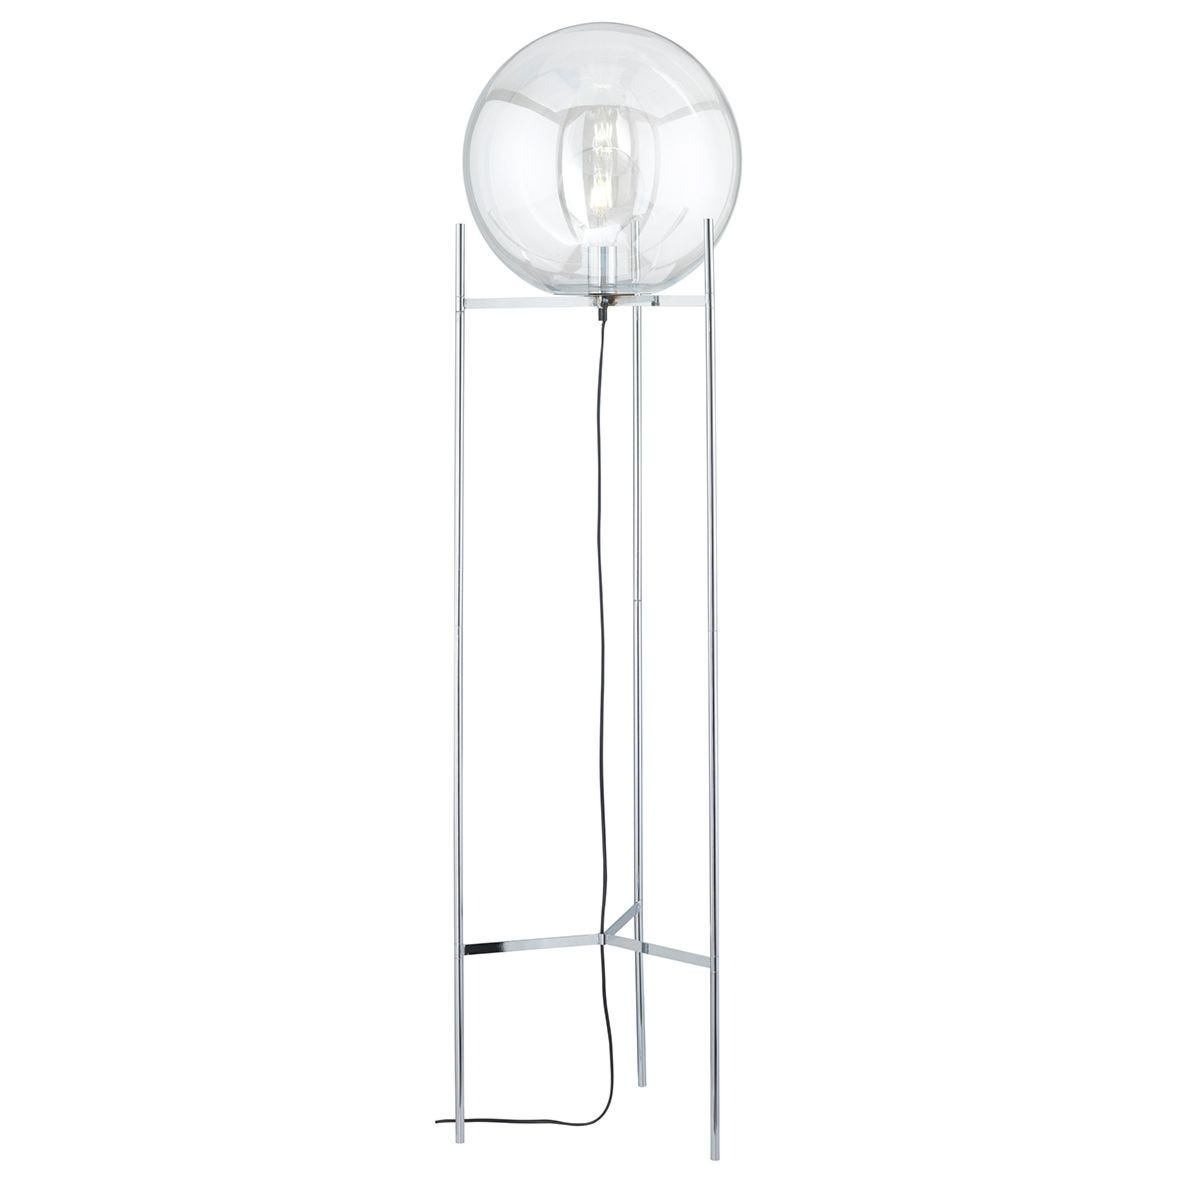 Wofi Ronda Floor Lamp - Chrome